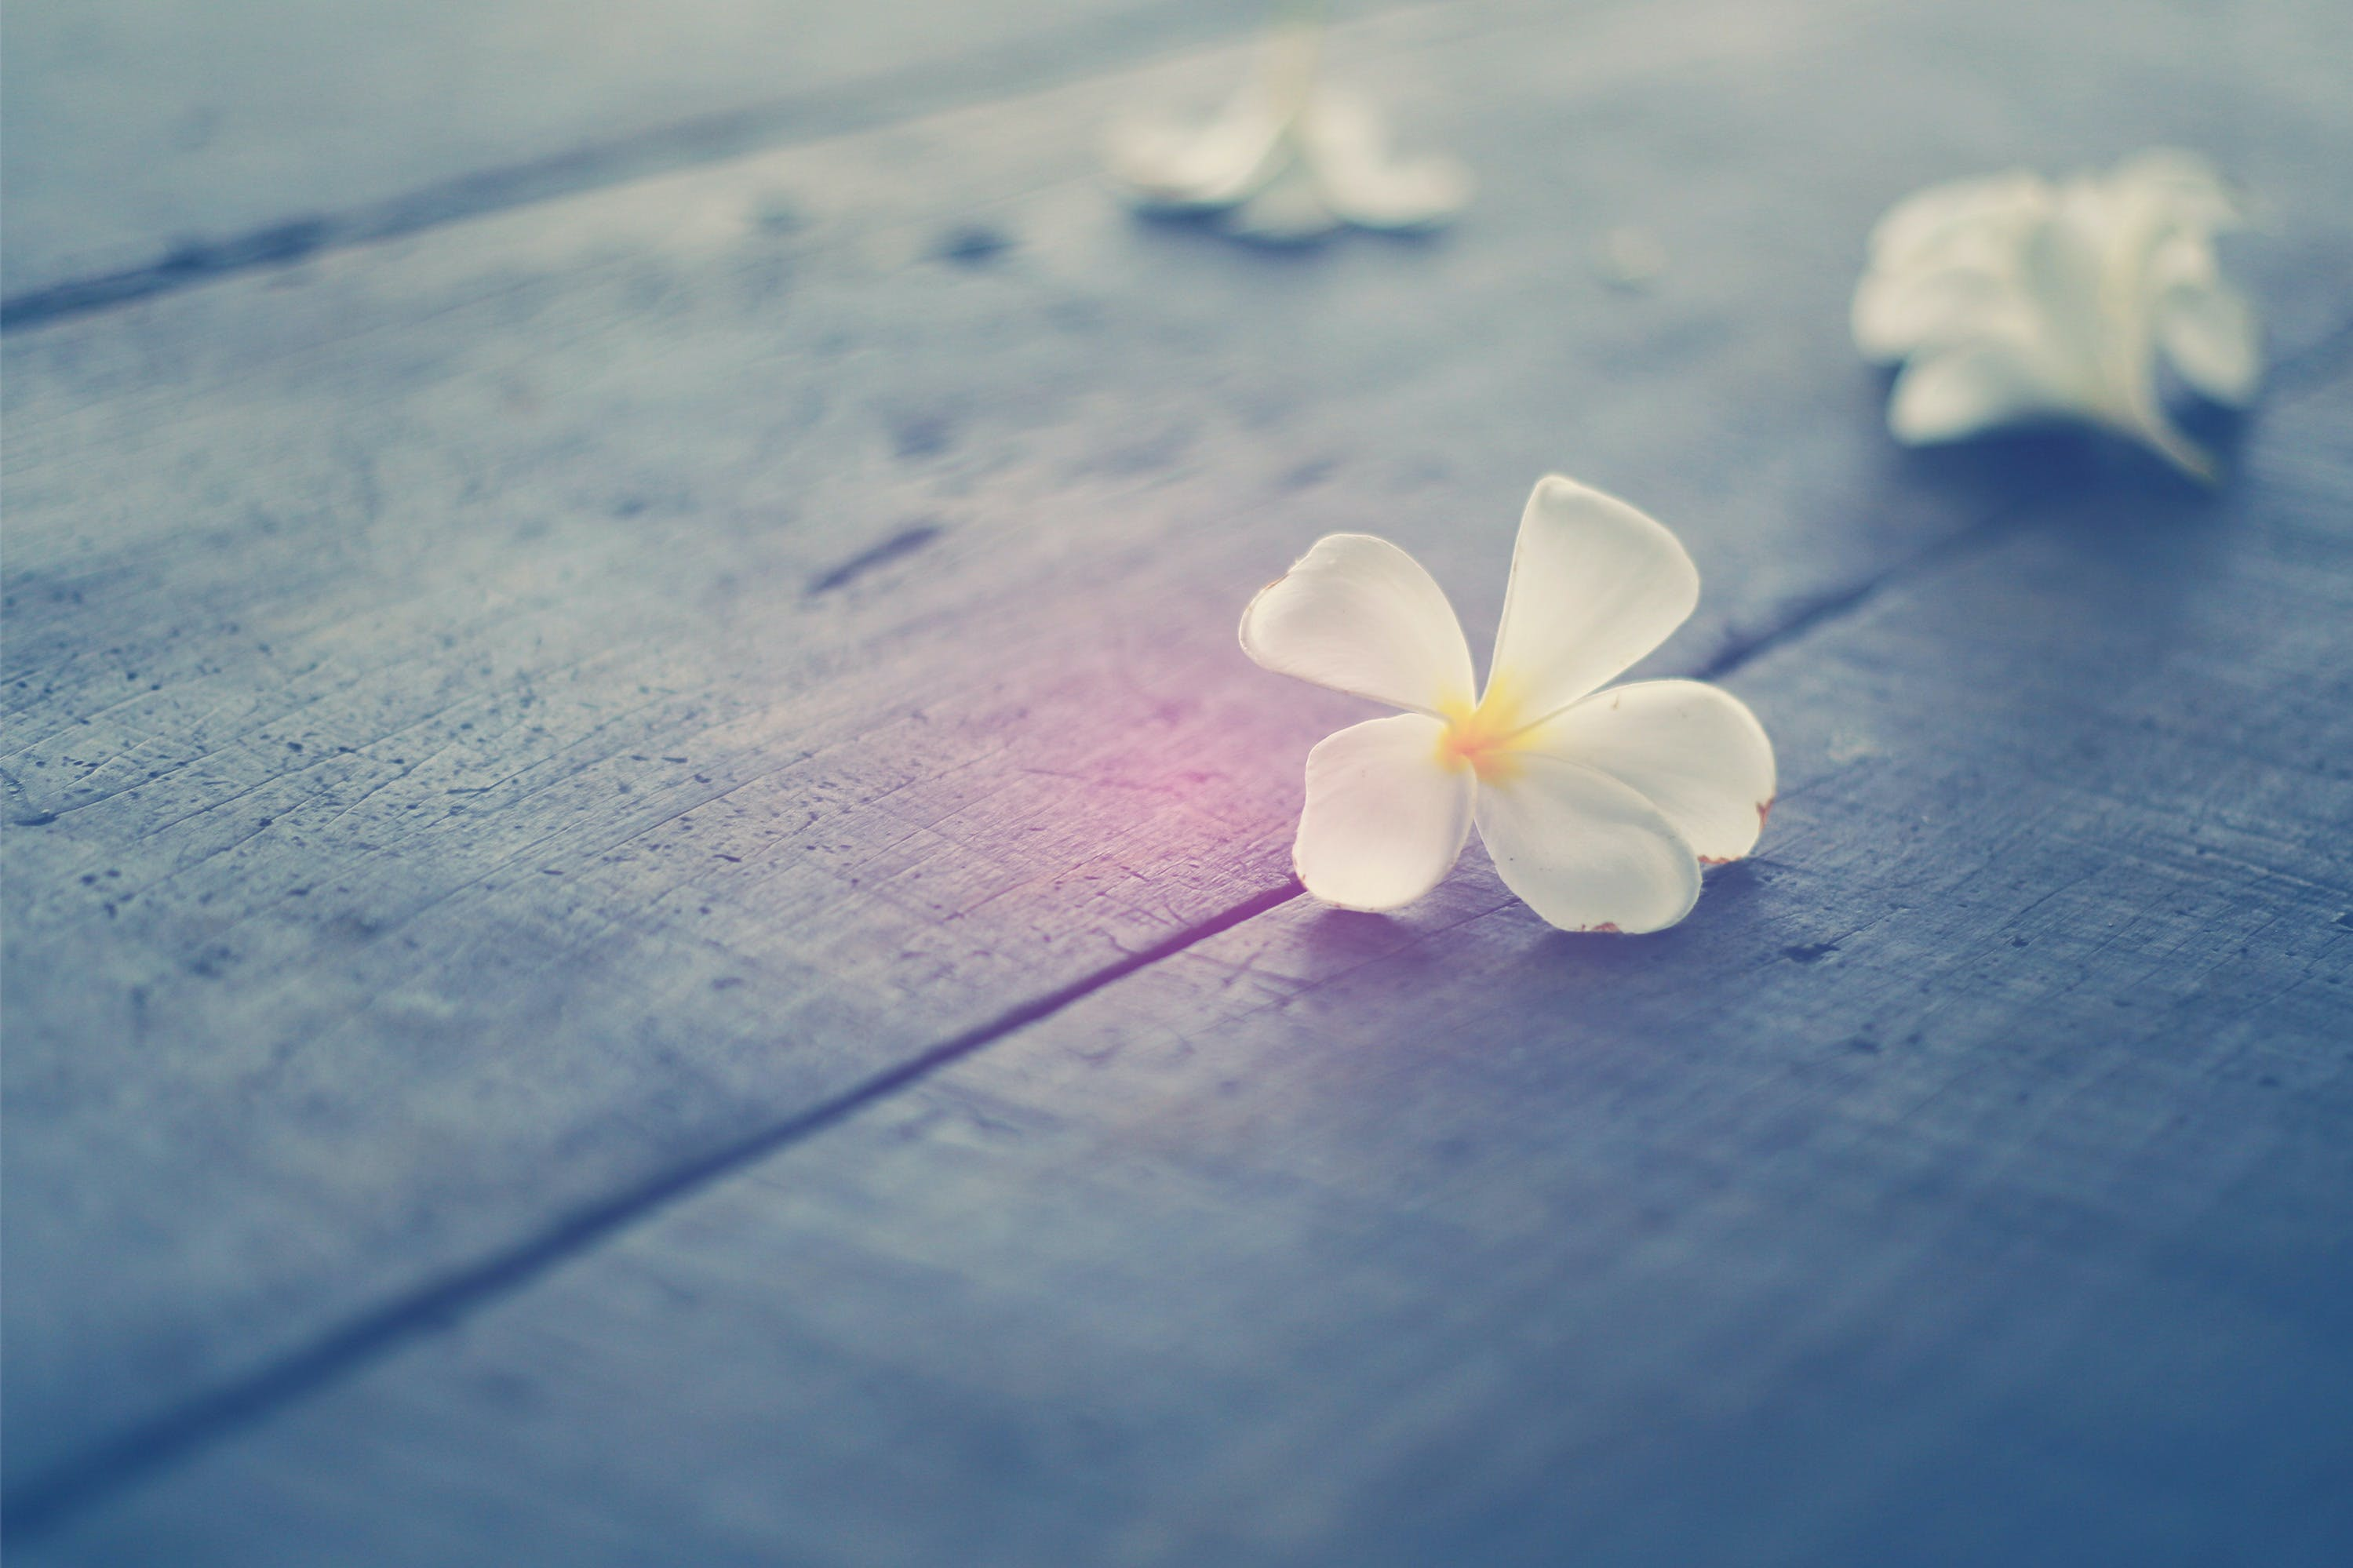 White Plumeria Flowers on the Floor